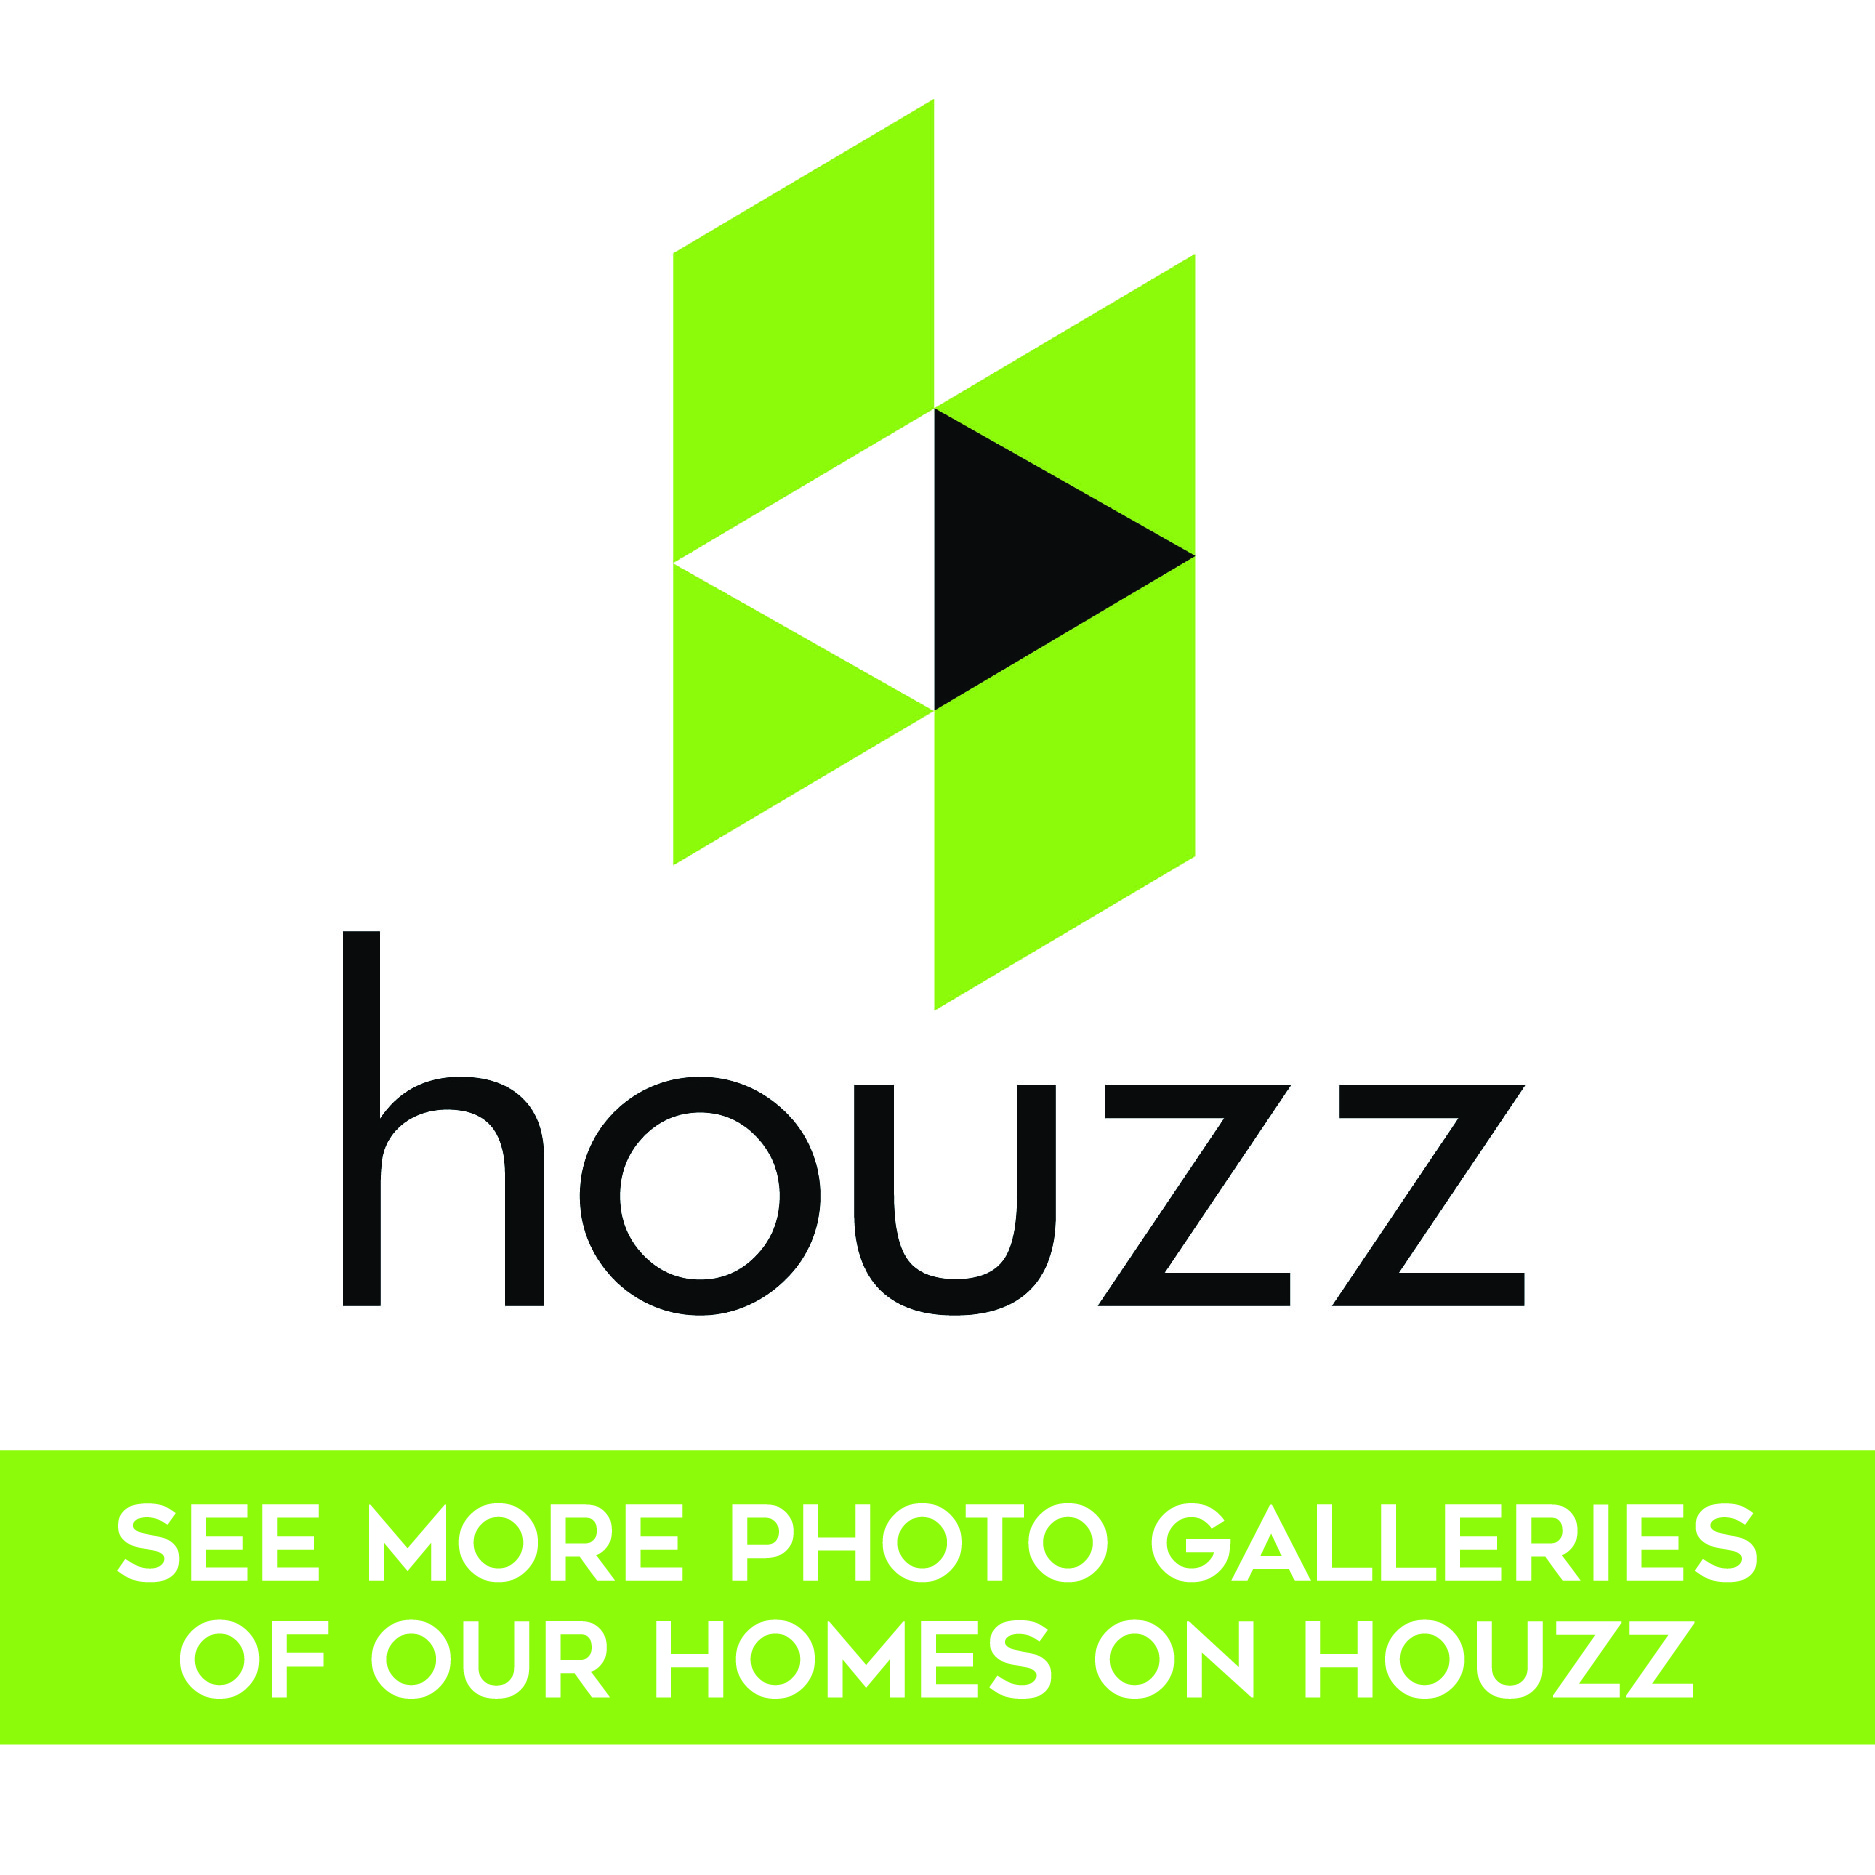 floor plans visit ball homes on houzz for more photos and idea galleries